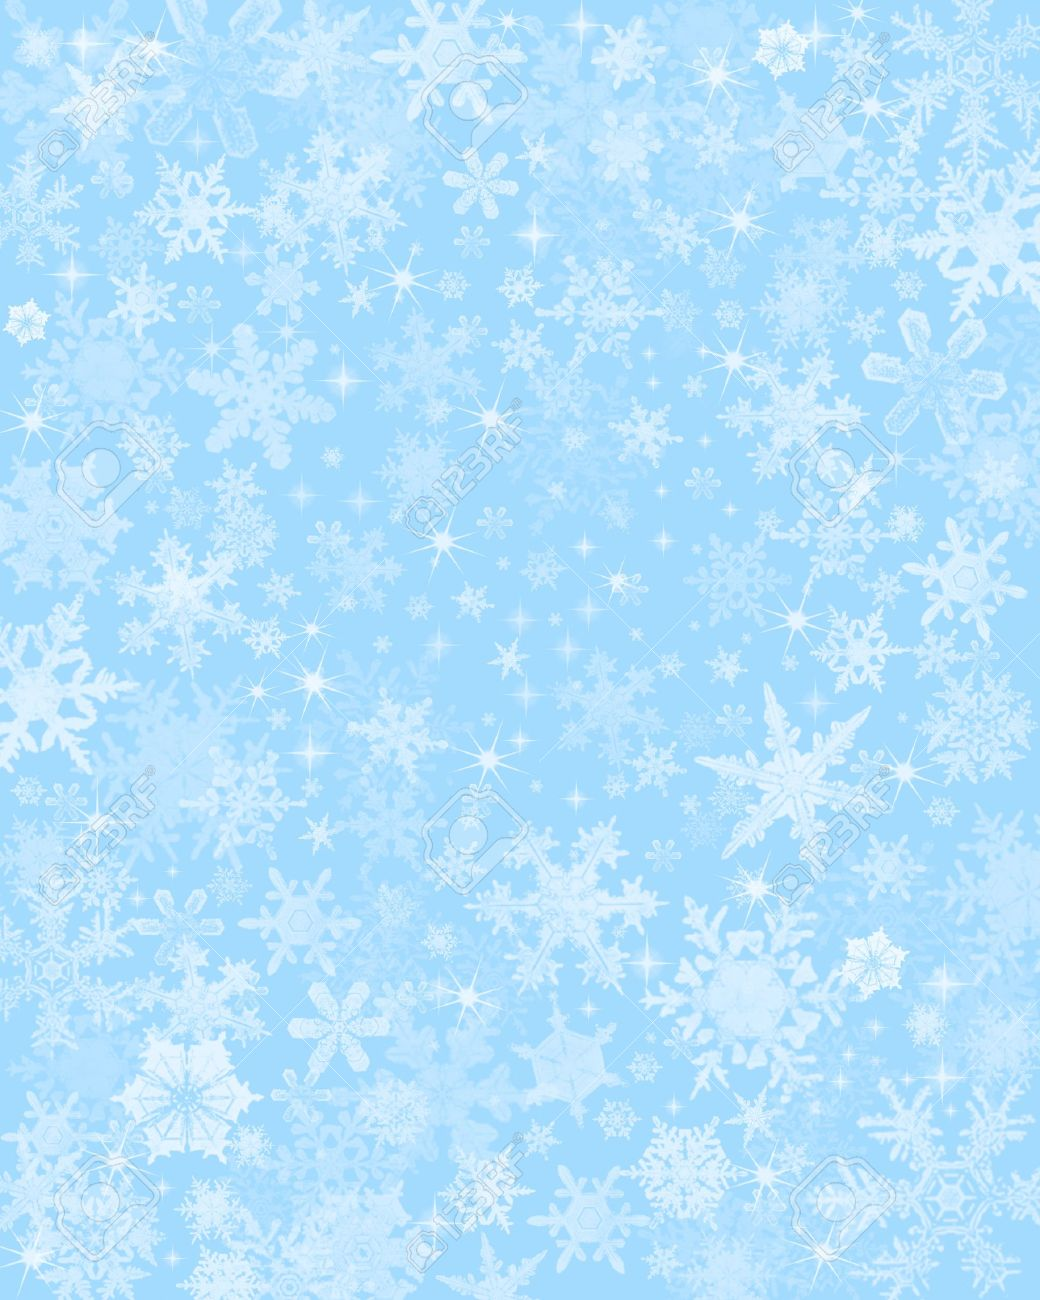 Light blue background - Snow Flakes On A Light Blue Background Stock Photo 10358701